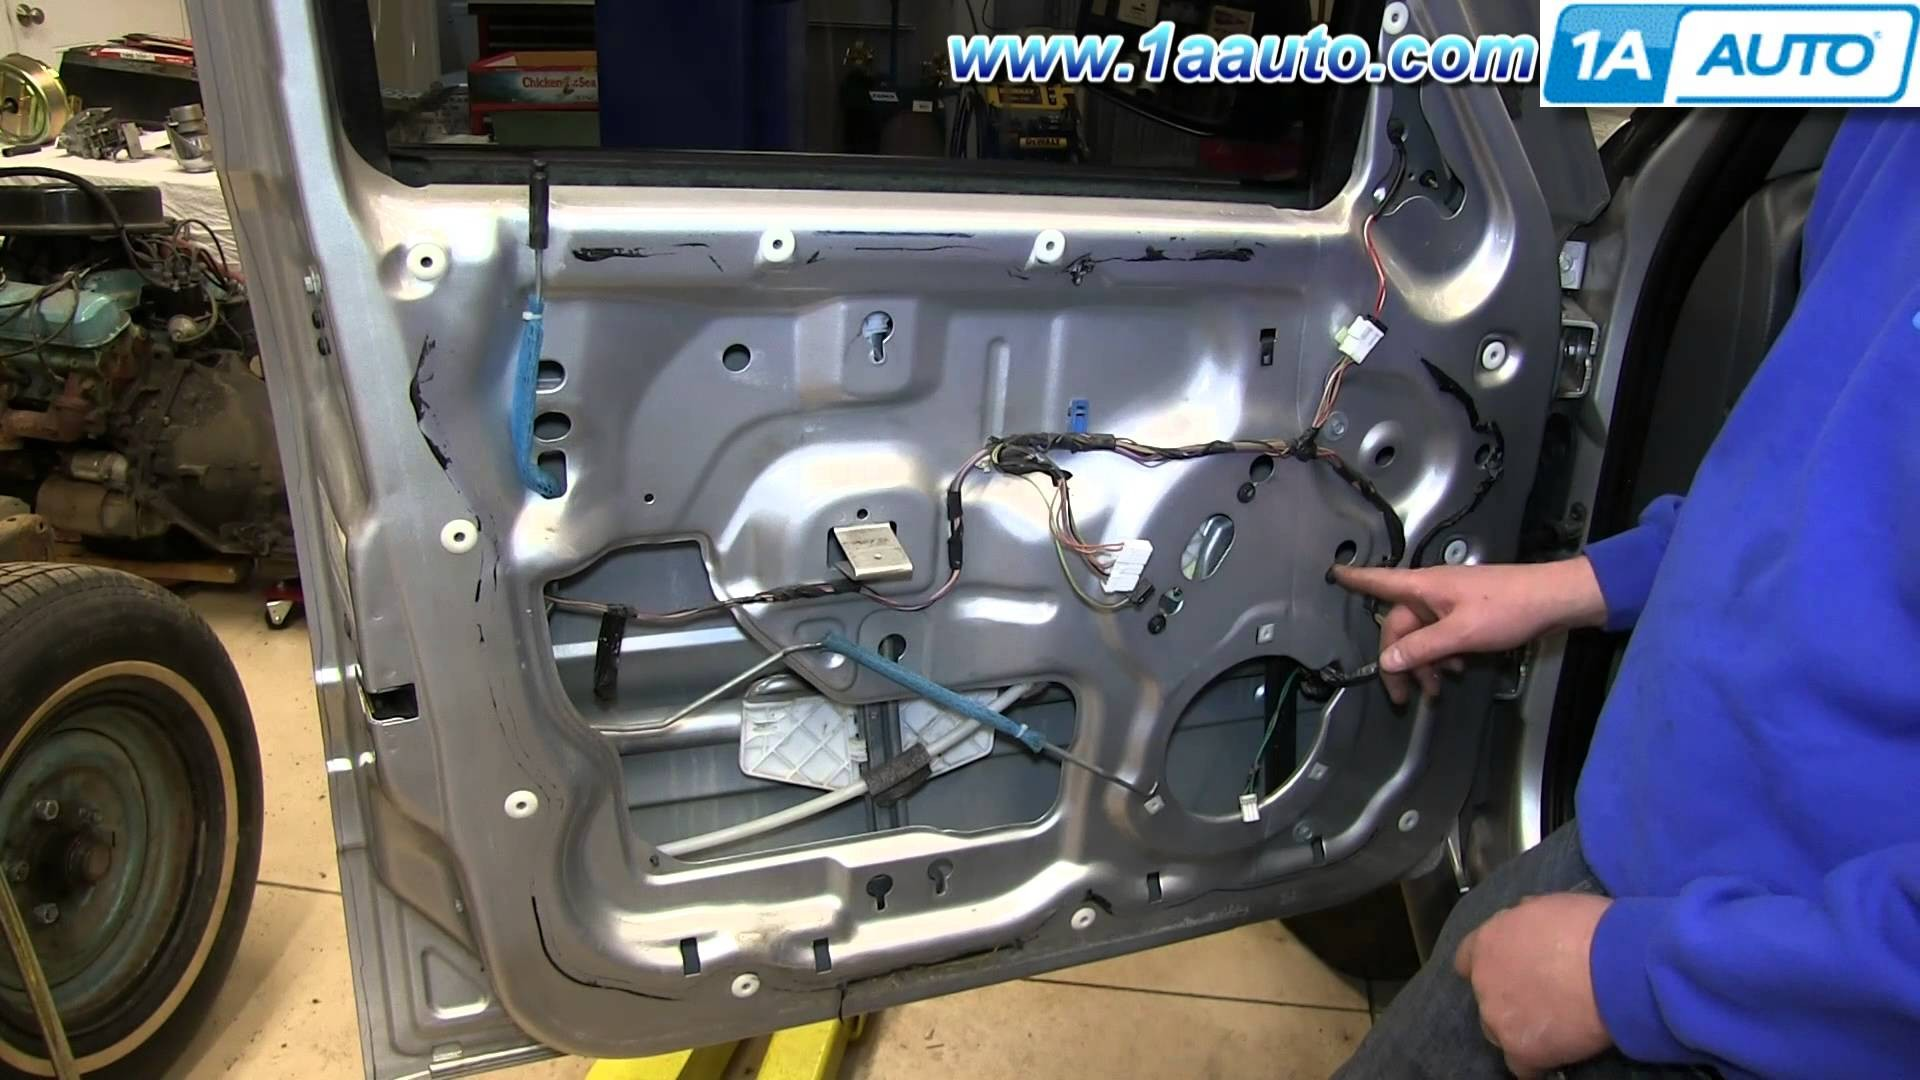 2003 Jeep Liberty Engine Diagram Car 3 7l How To Install Replace Front Power Window Regulator 2002 07